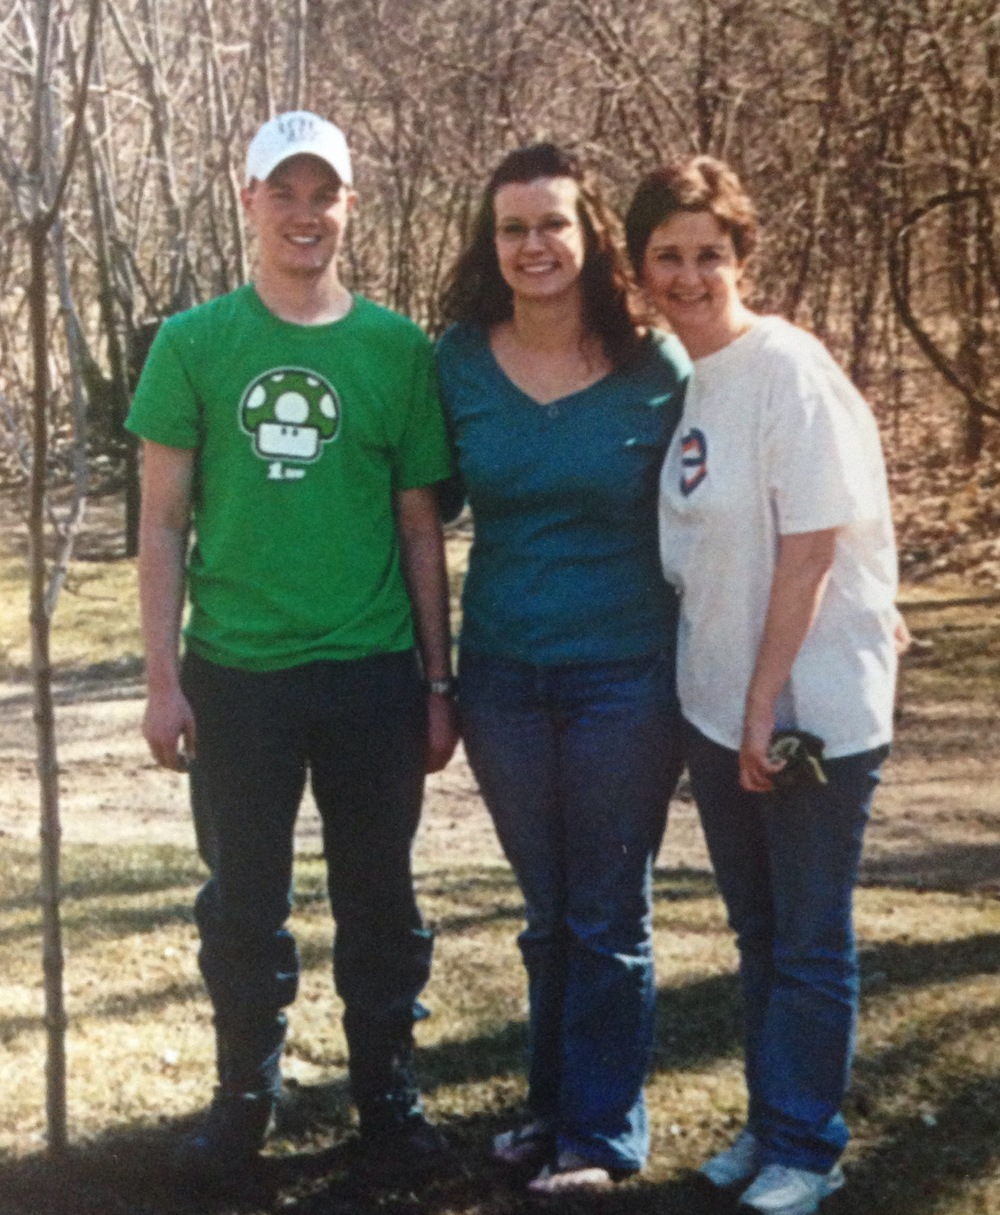 I'm in the middle between my hubby and my mom in 2007.